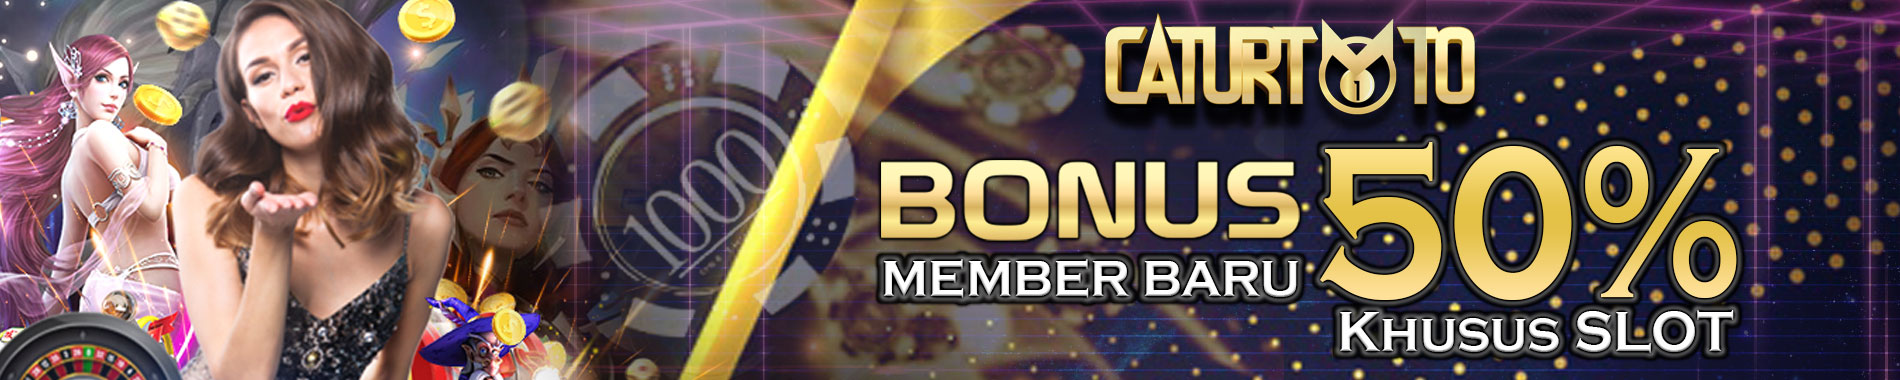 Bonus New Member 50% Slot